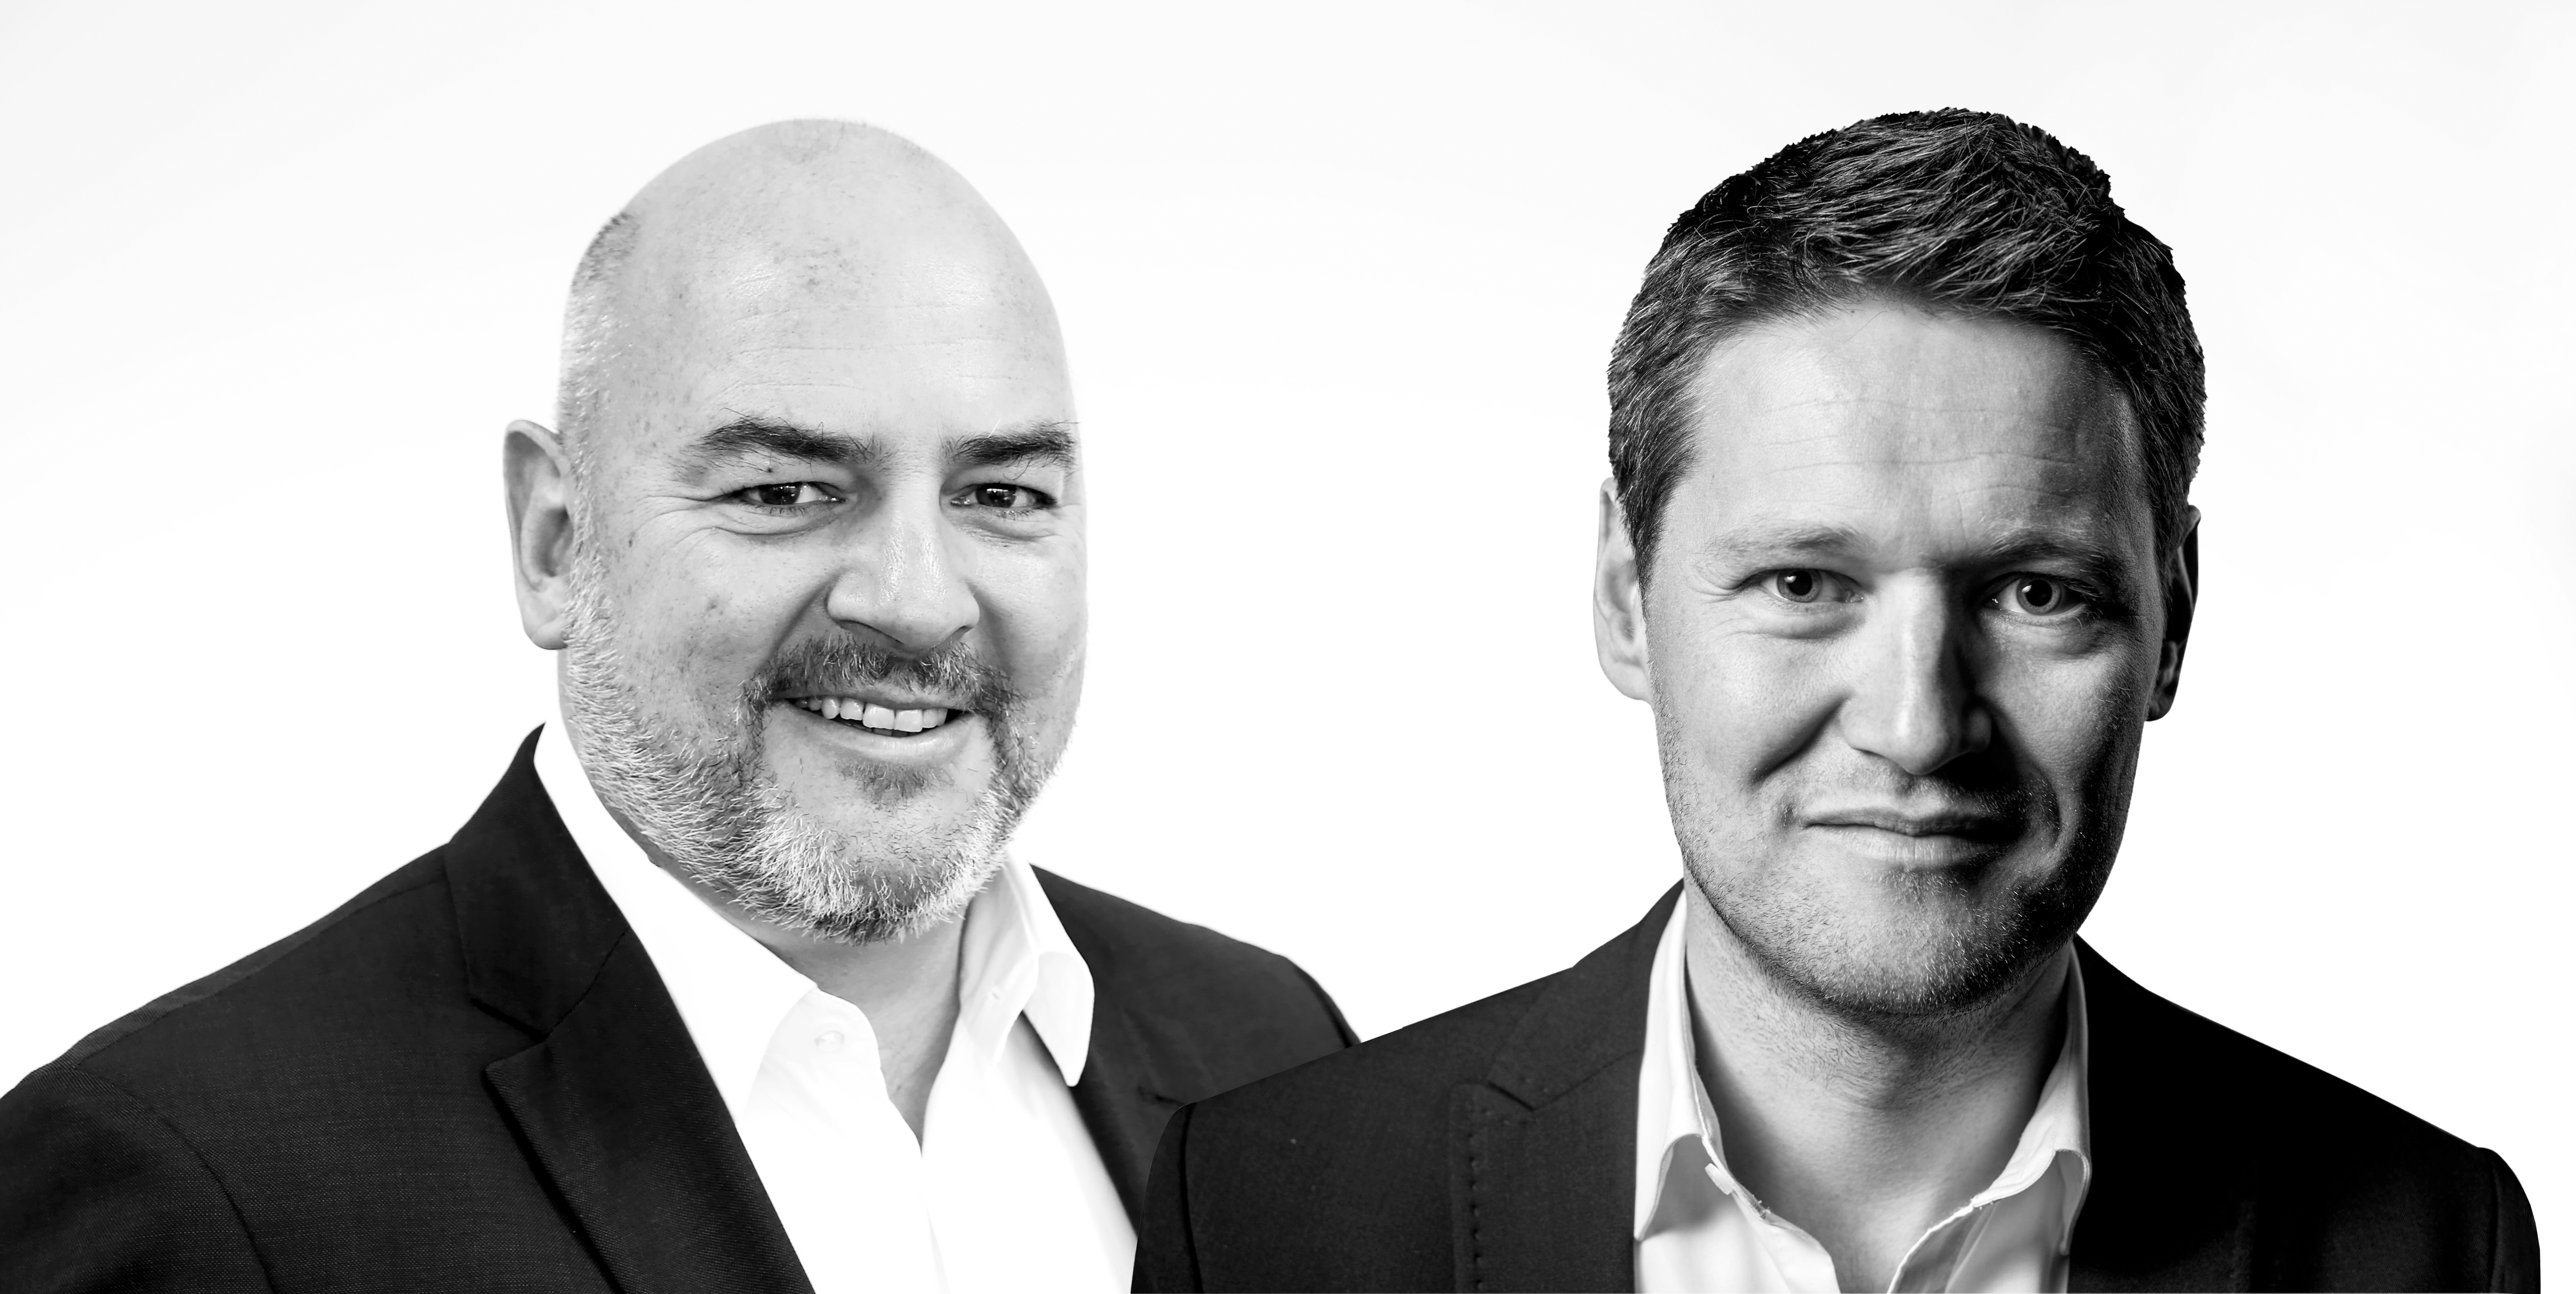 Stefan Müller (l.) und Benjamin Schweppe, B&M Marketing